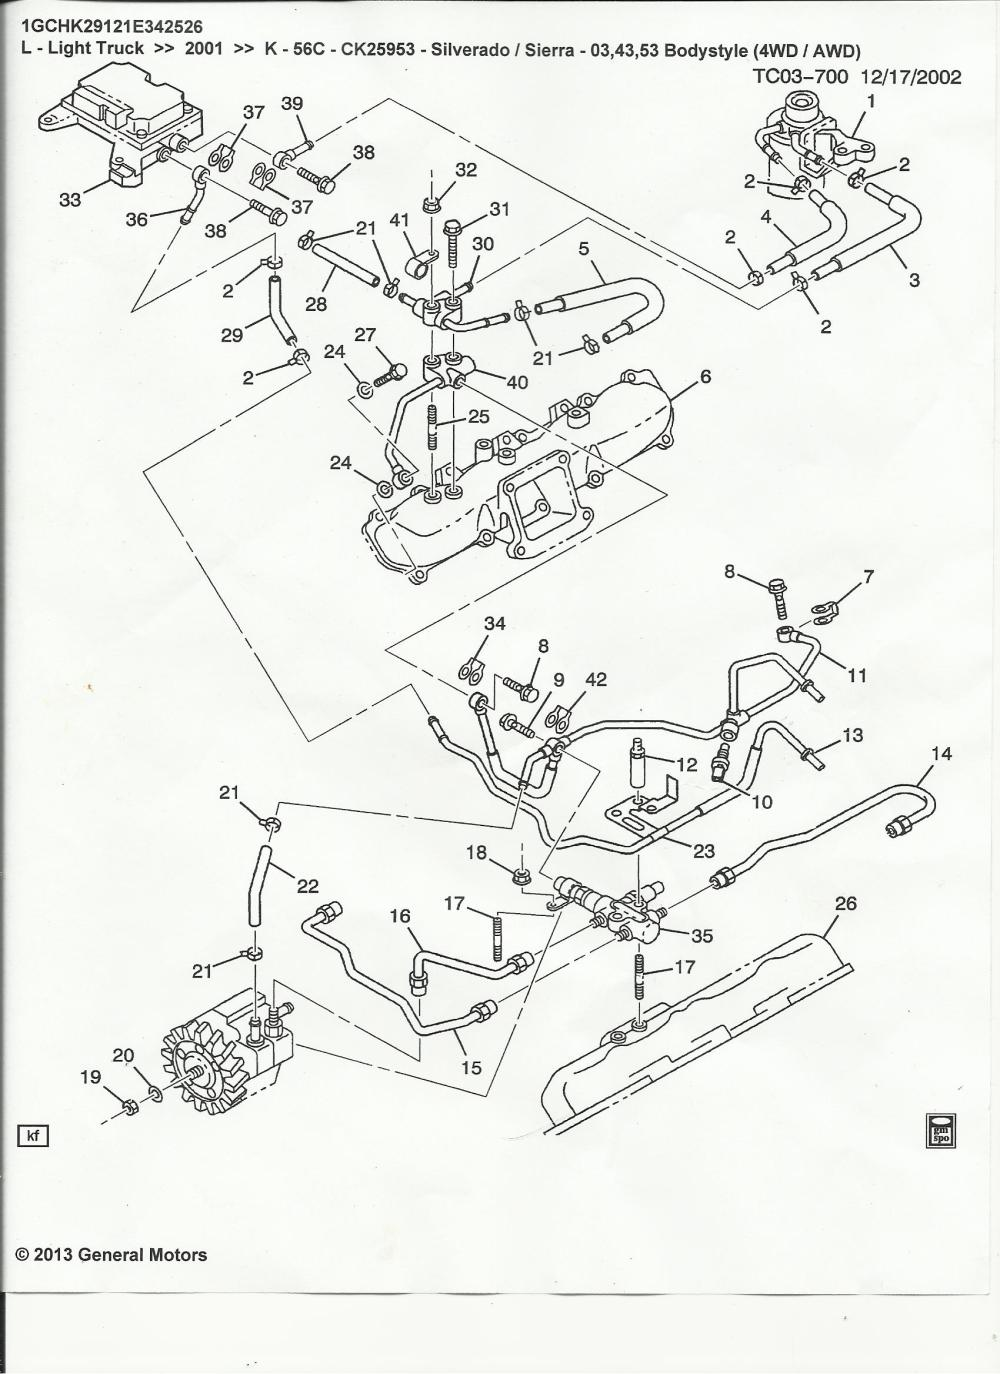 medium resolution of 2003 silverado fuel line diagram wiring diagram used 2003 chevy silverado fuel pump diagram 2003 silverado fuel diagram